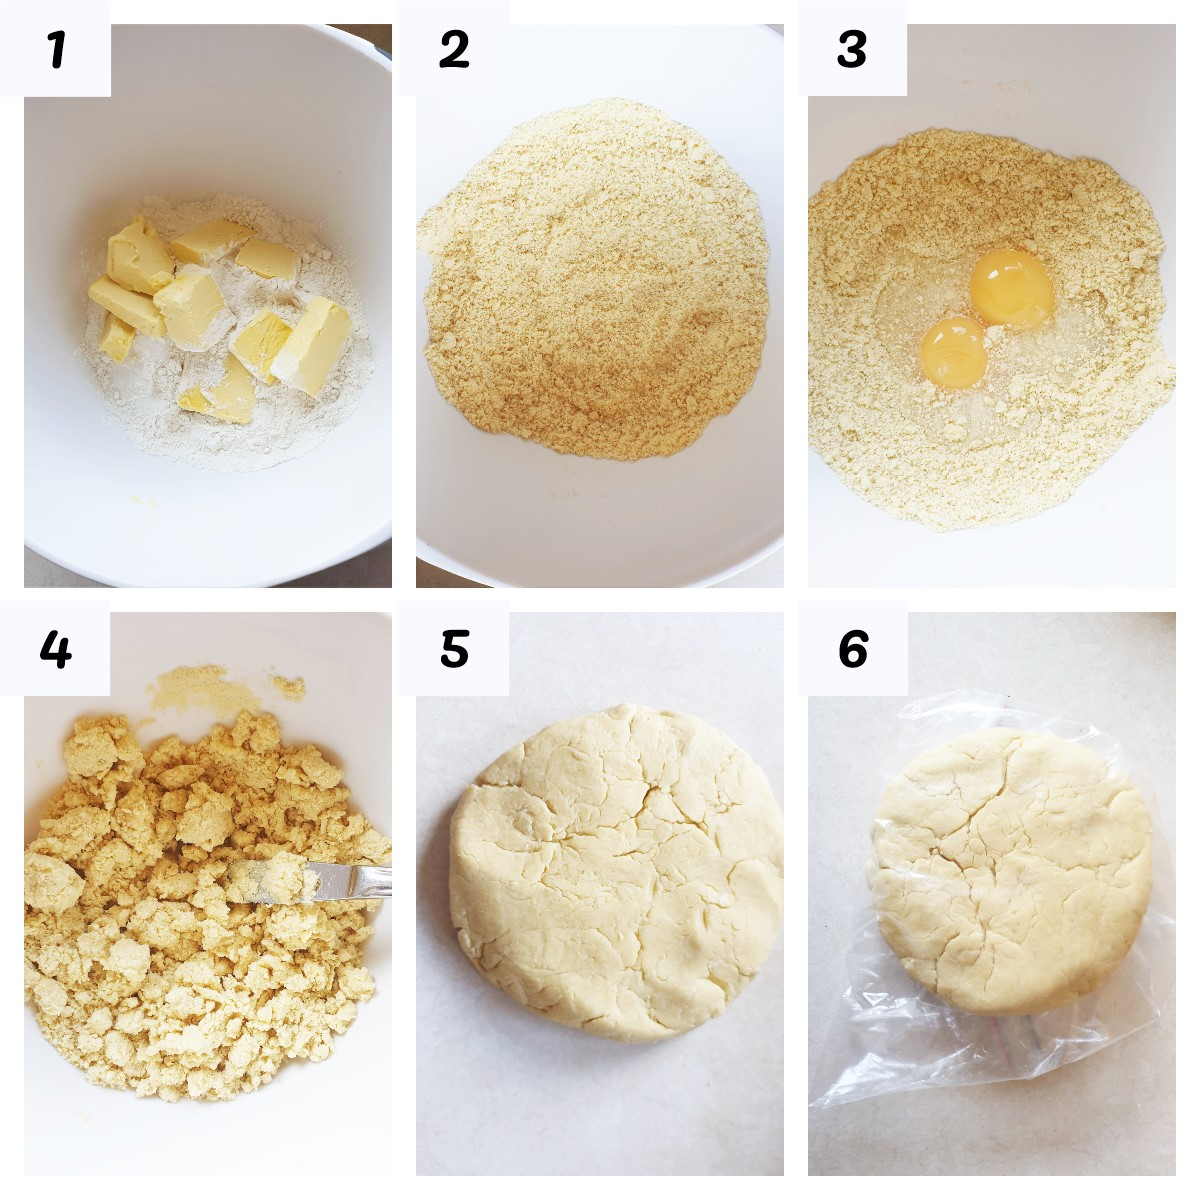 Steps to make the pastry.